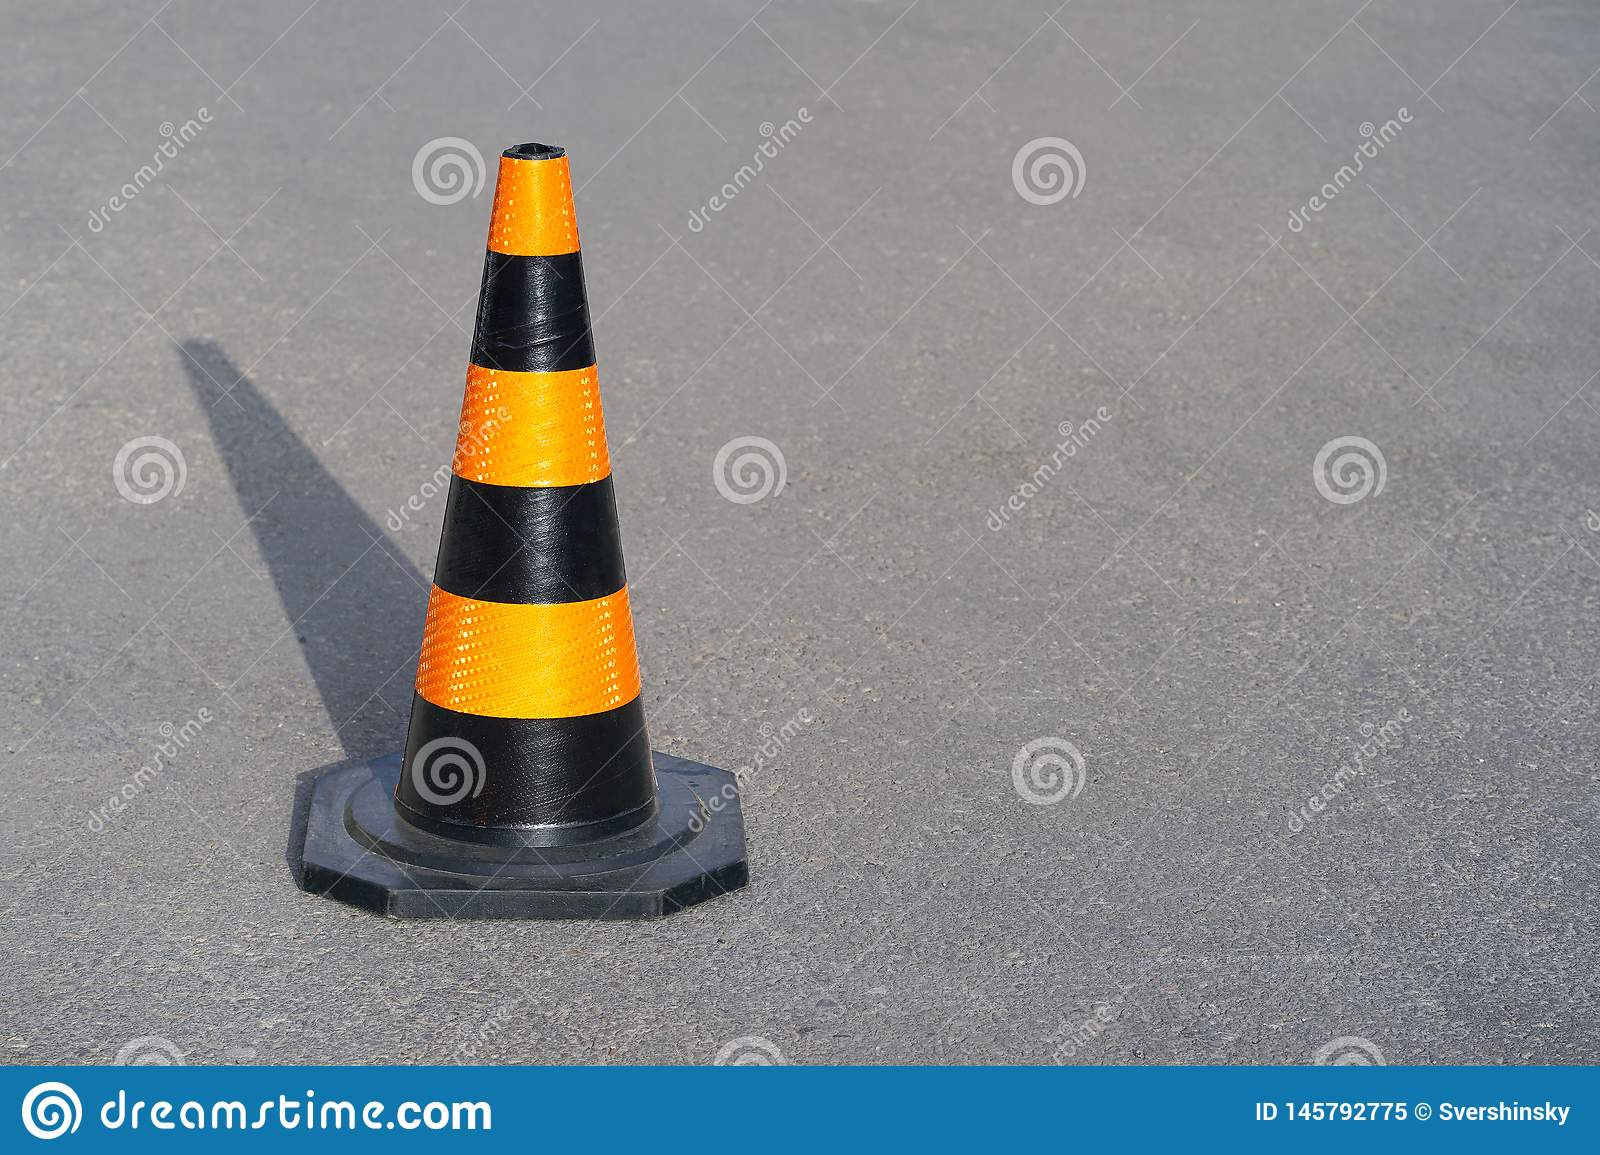 Road cone on the asphalt. Red caps on the road